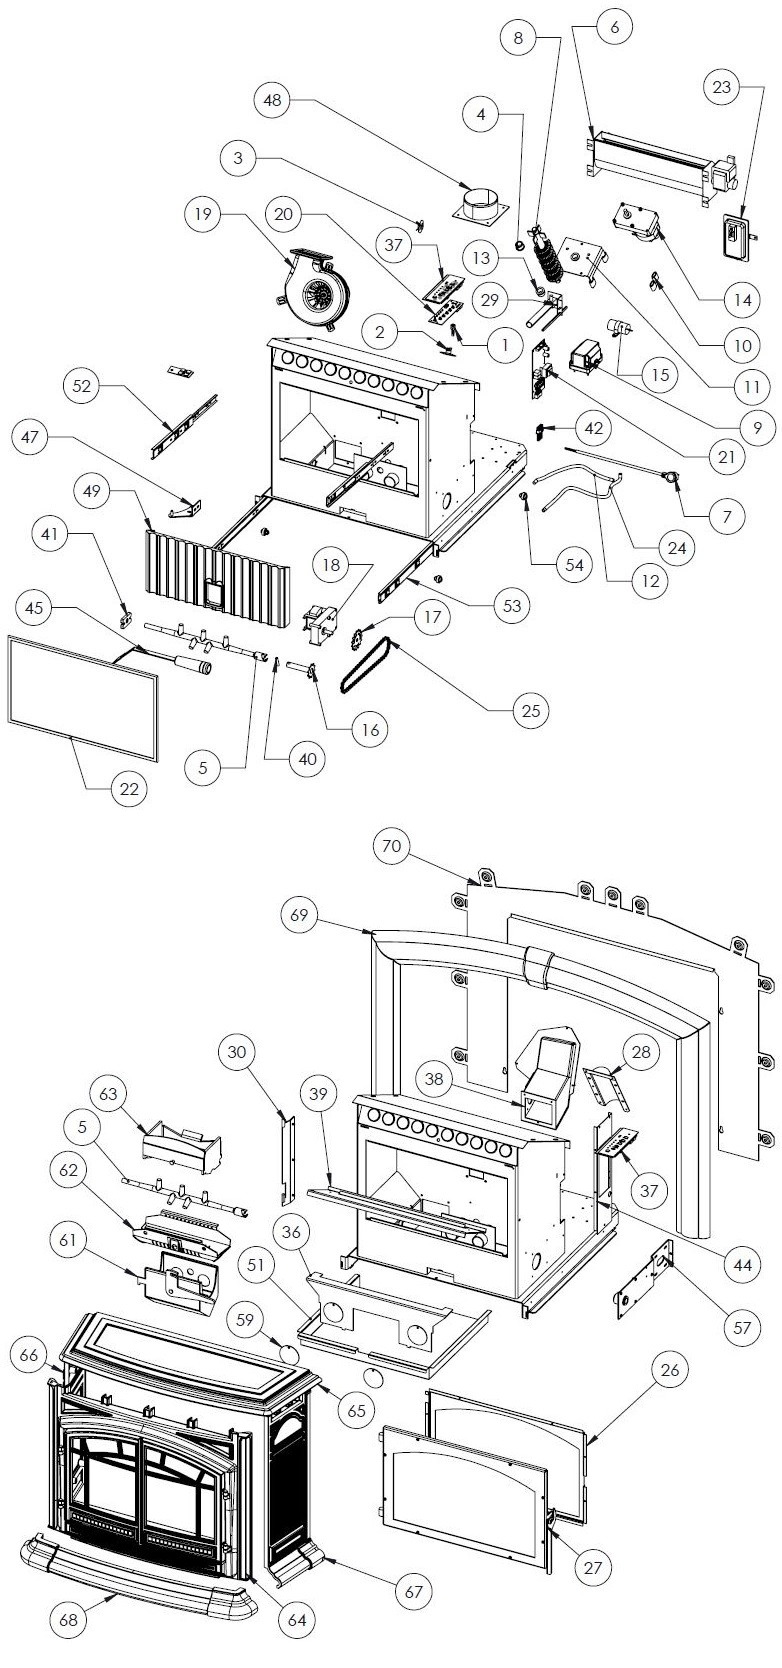 hight resolution of m55 fpi insert parts free shipping on orders over 49 rh stove parts unlimited com wiring diagram symbols basic electrical wiring diagrams